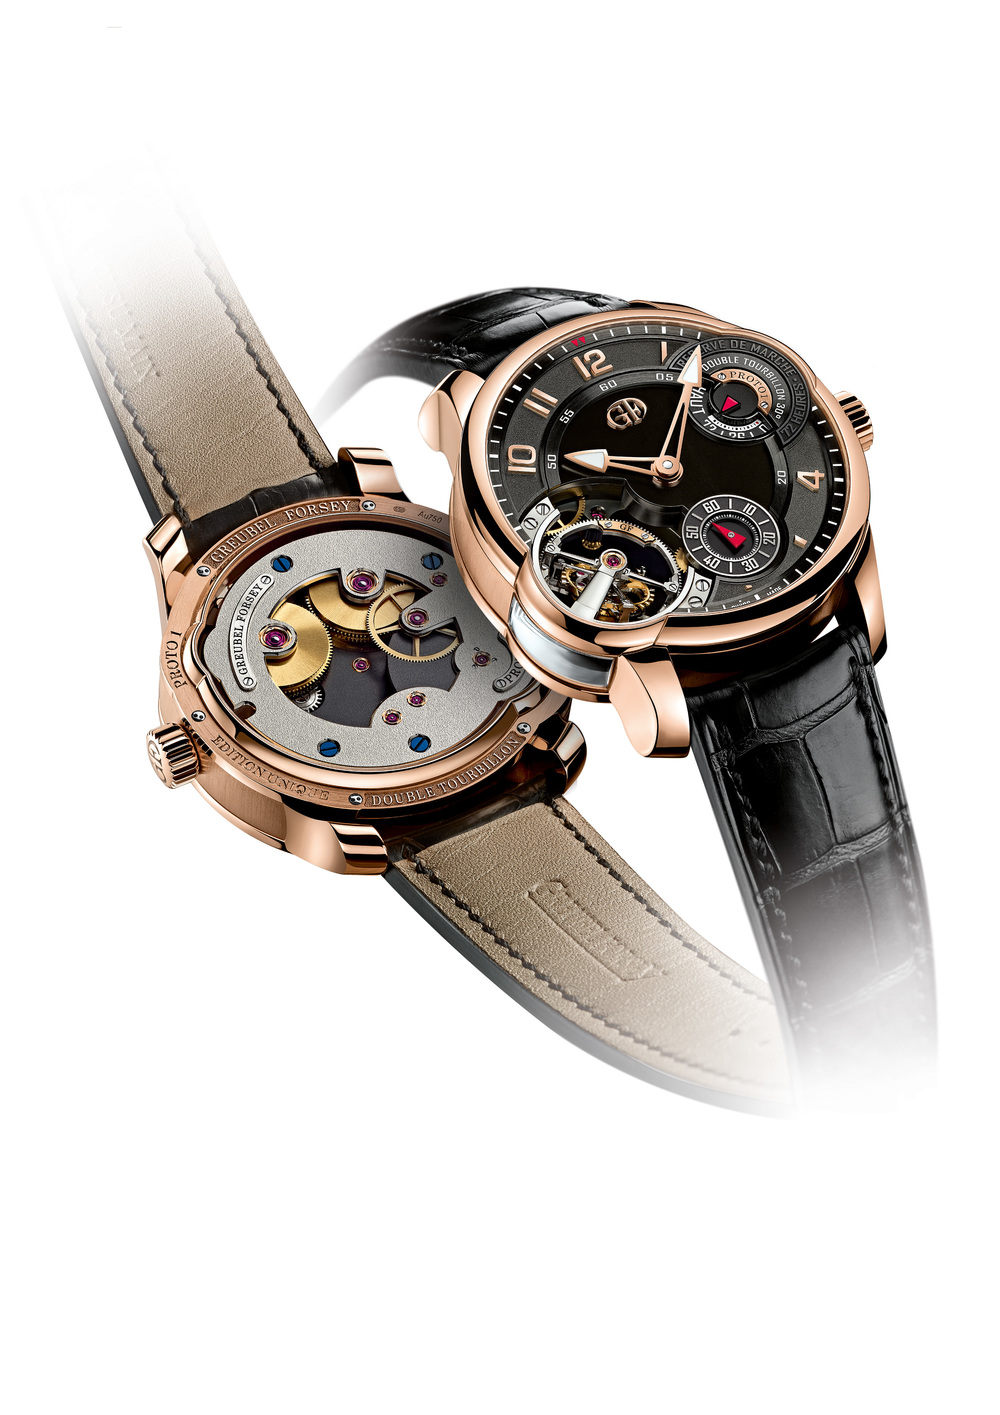 Double Tourbillon Asymetrique in Red Gold case with black dial